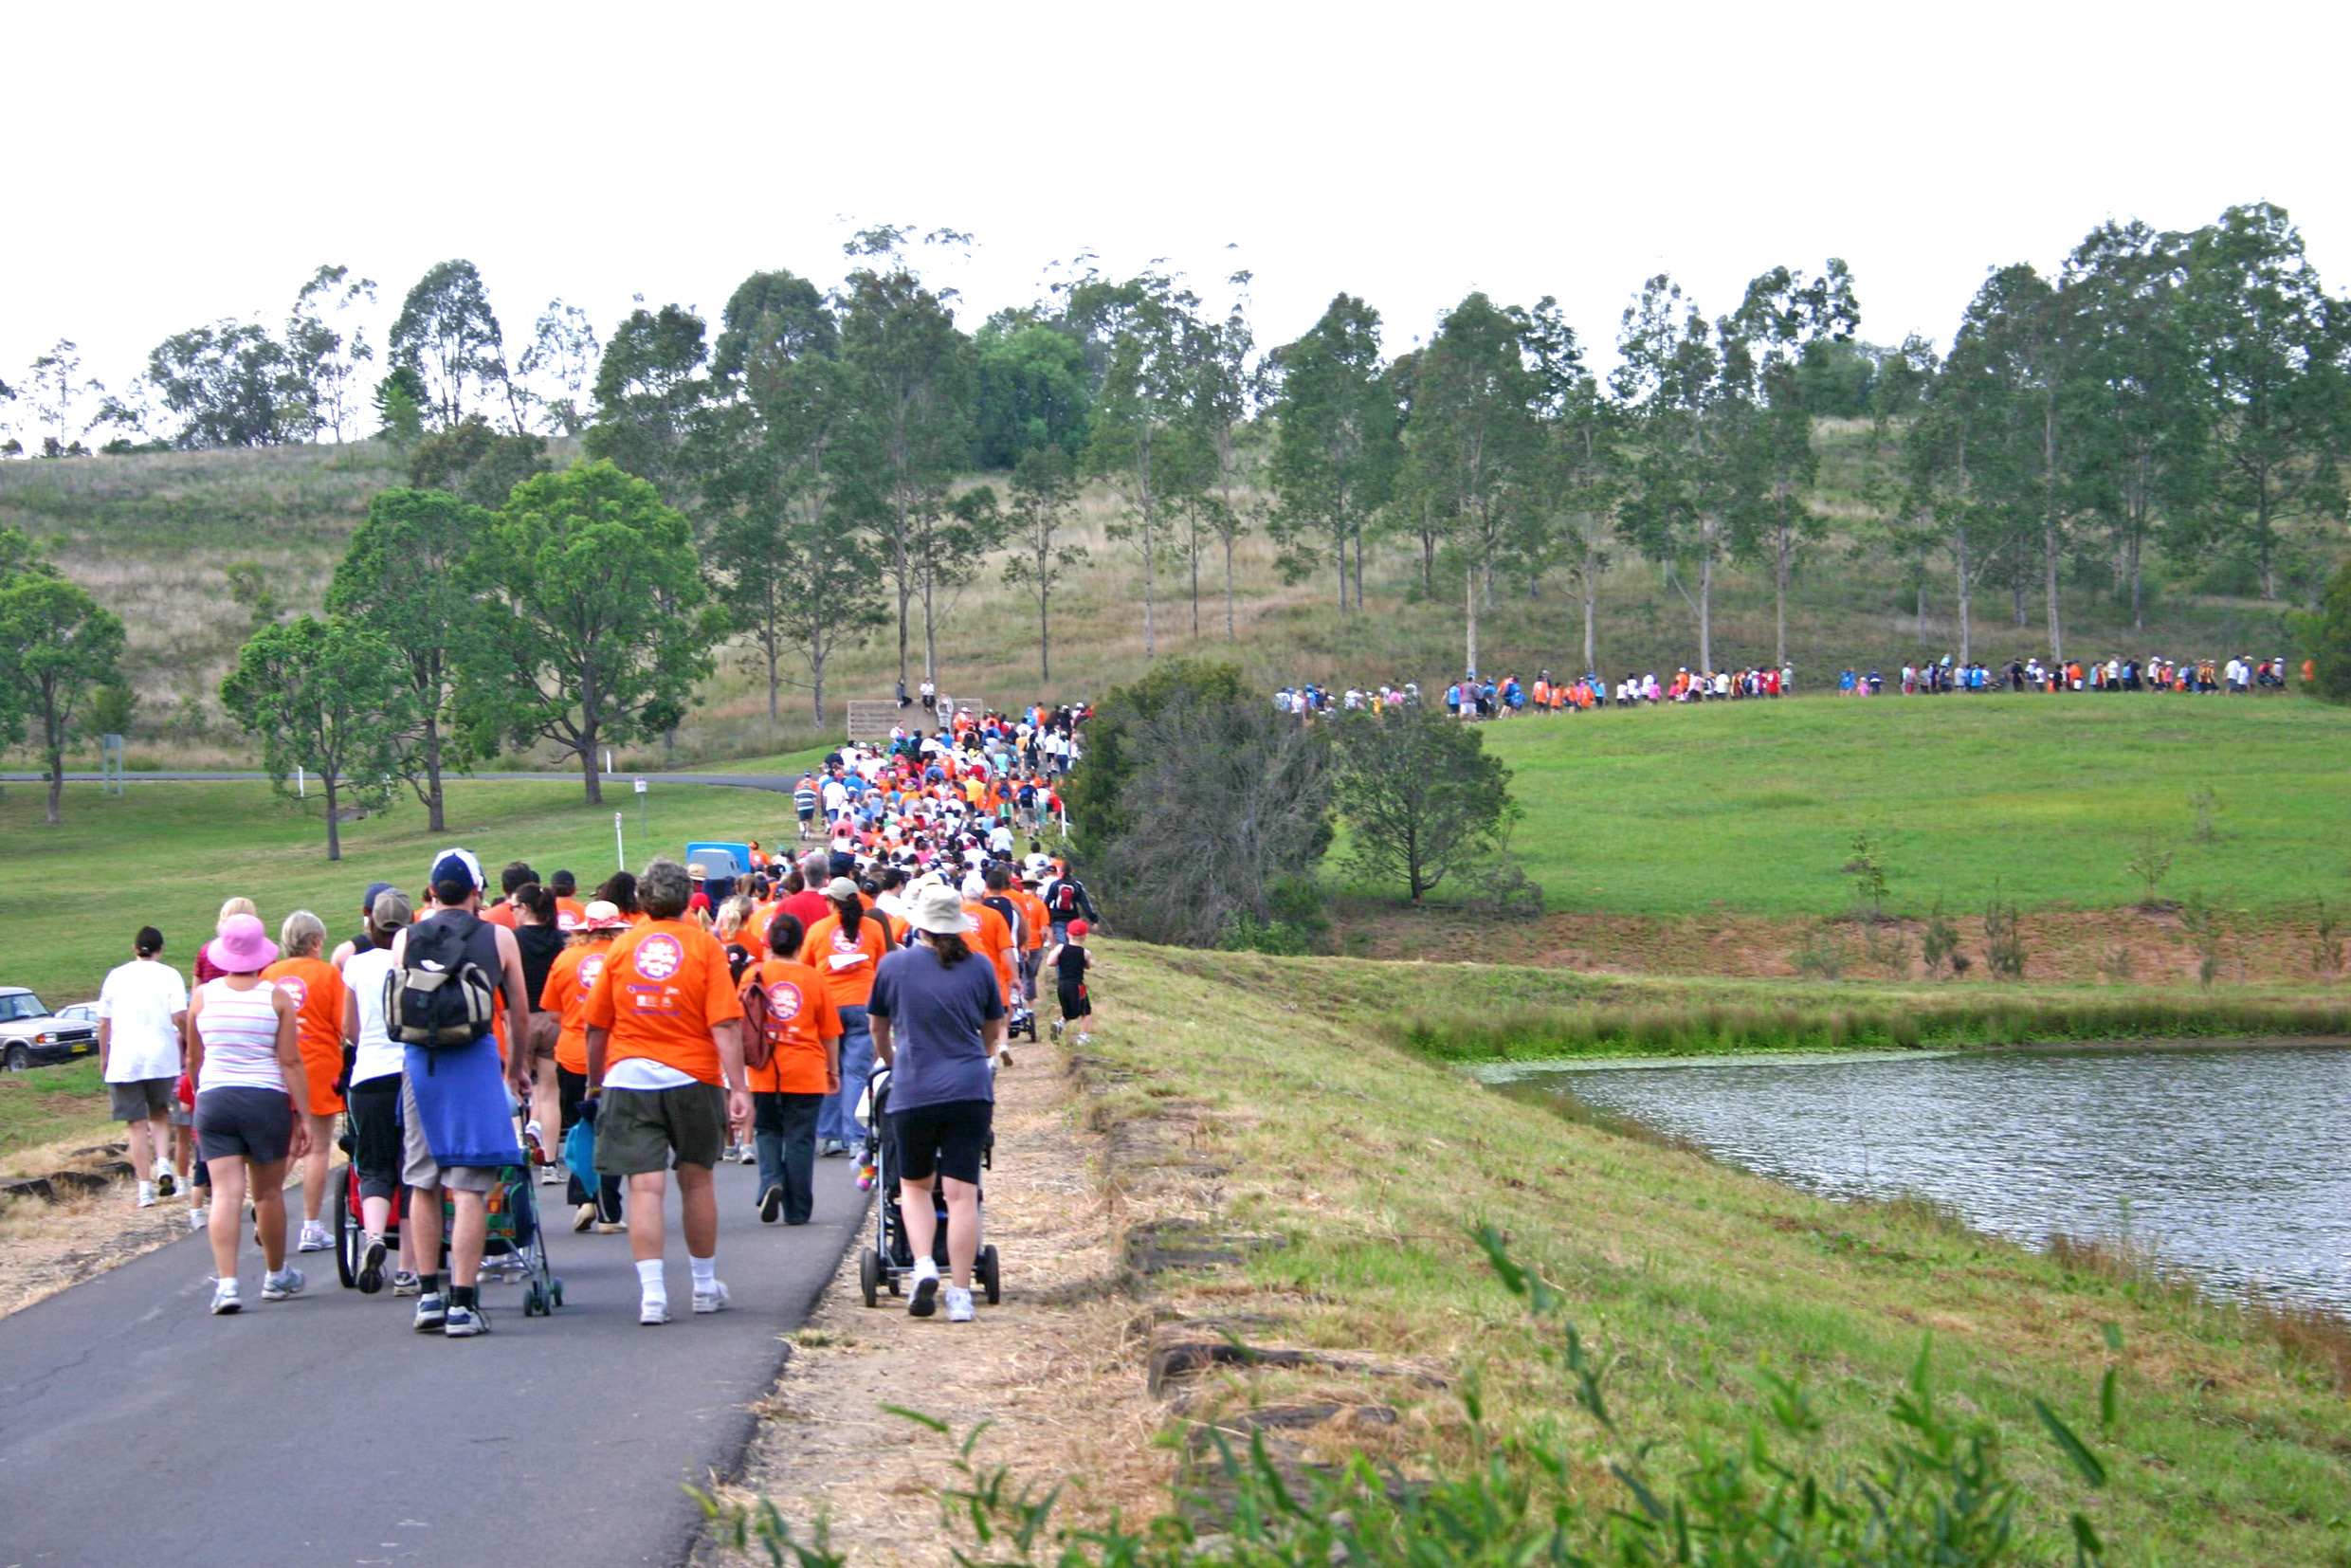 People walking past a lake on the Campbelltown City Challenge Walk.